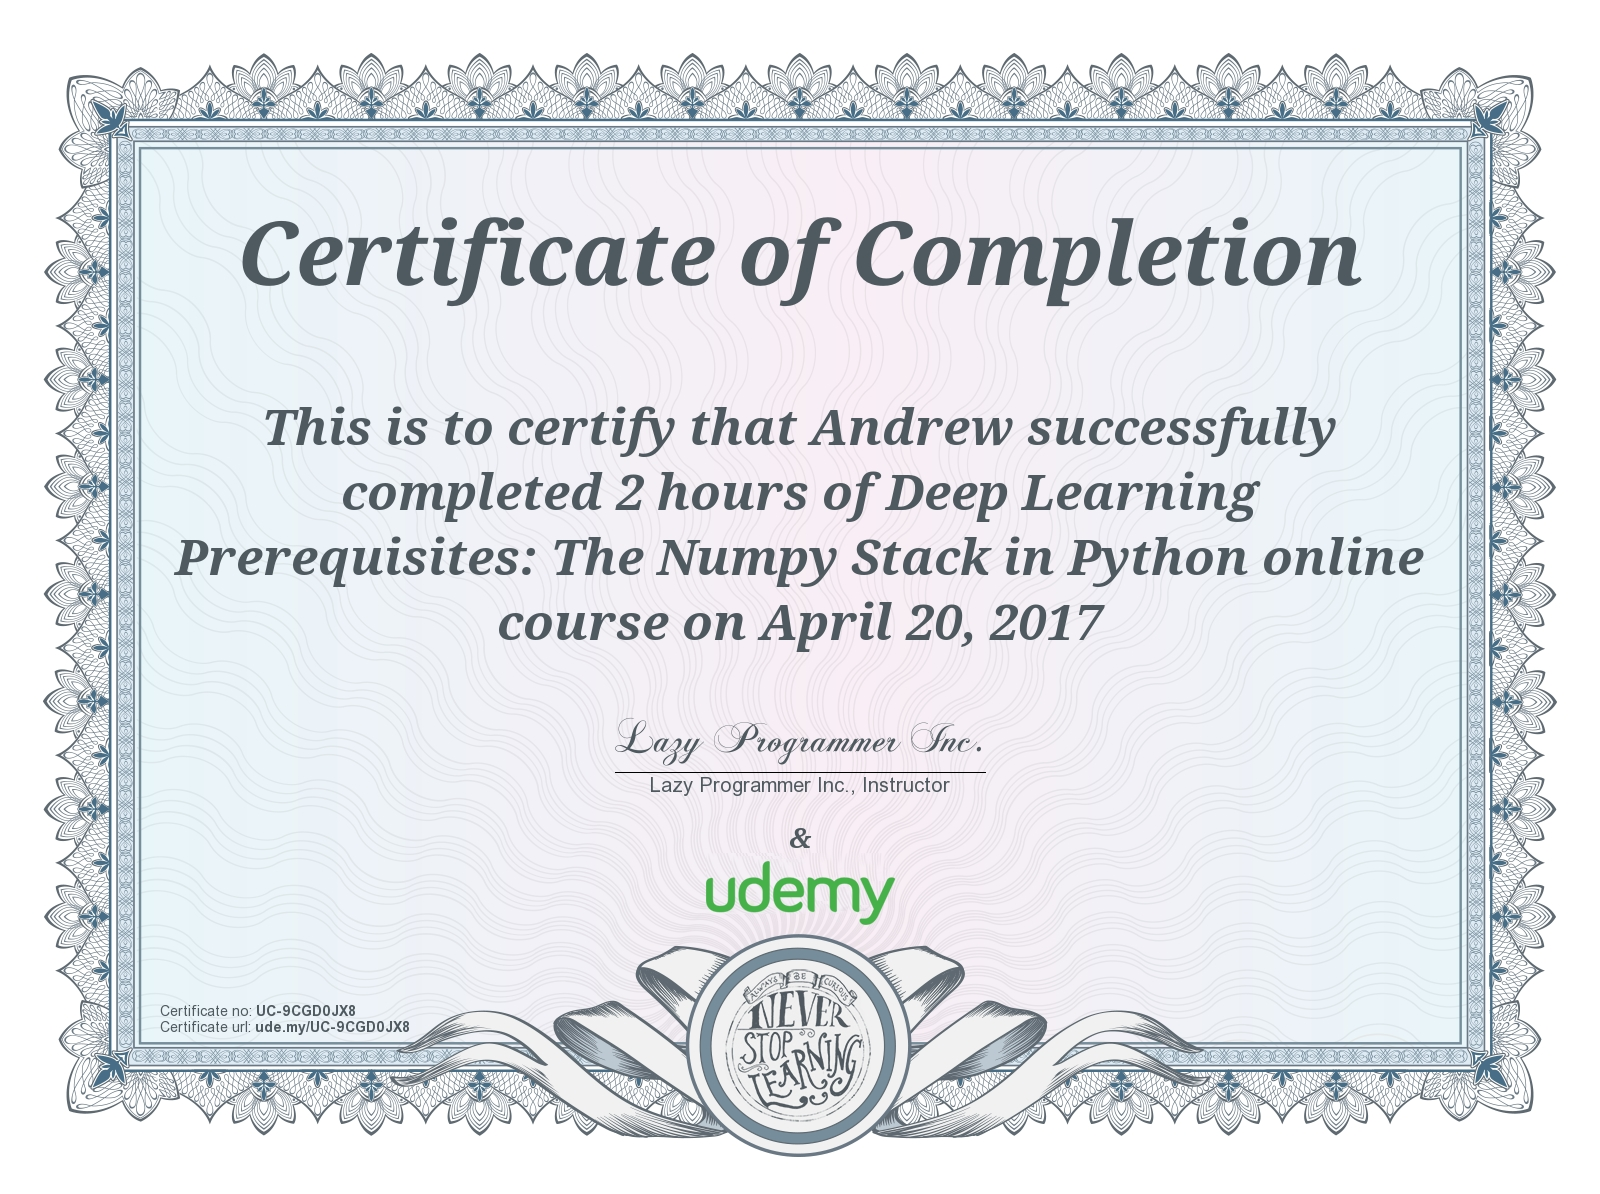 Review of Udemy's 'Deep Learning Prerequisites: The Numpy Stack in